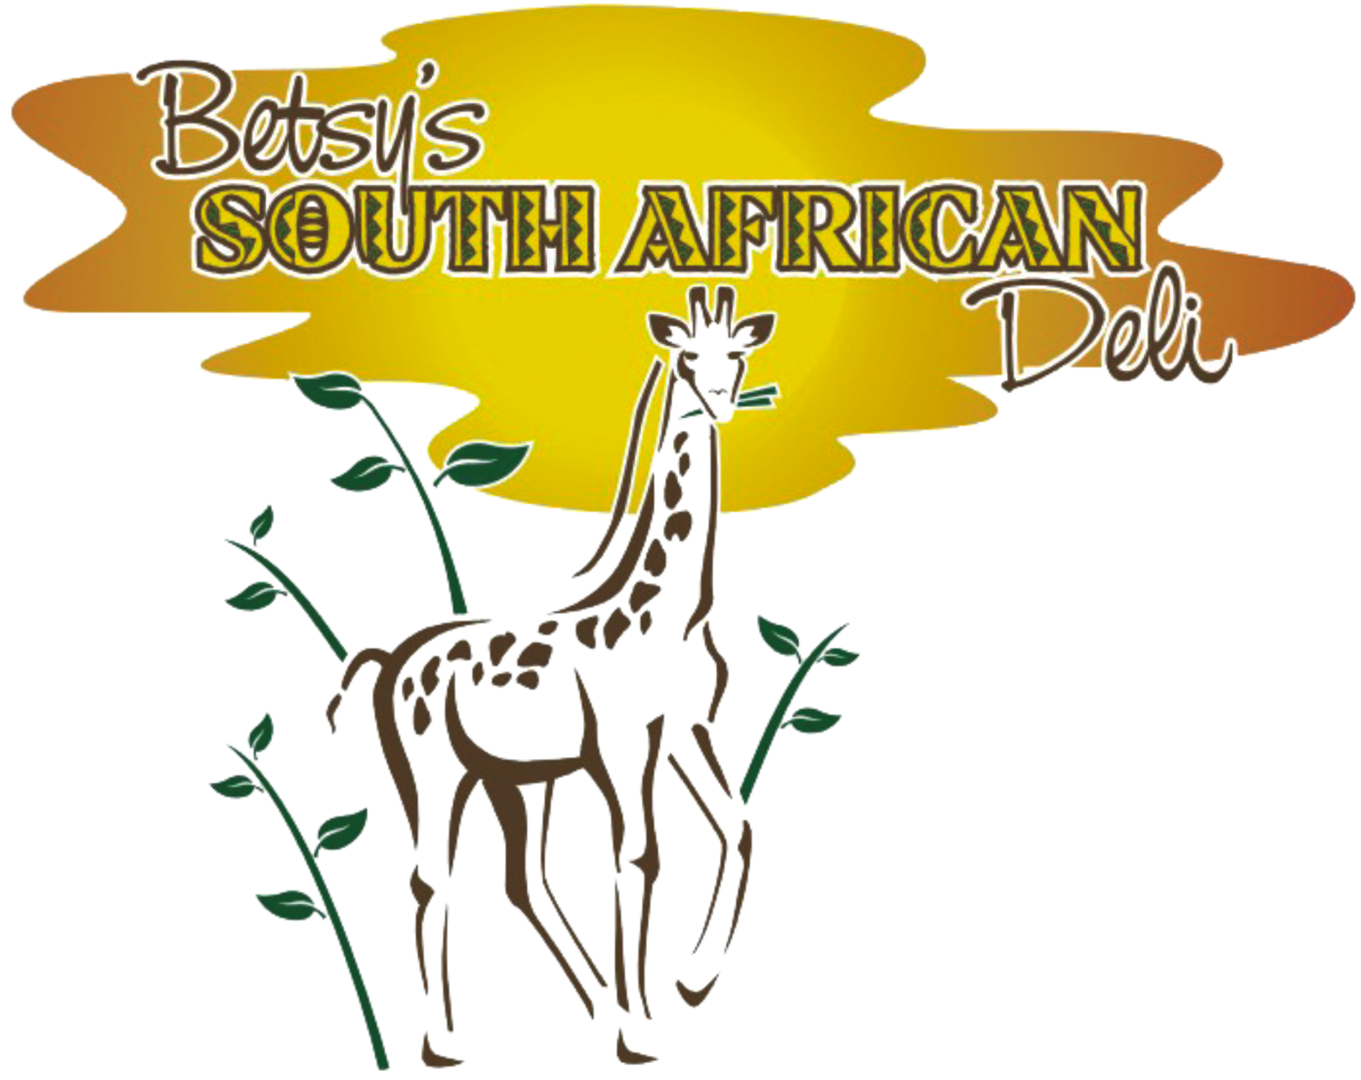 Betsy's South African Deli